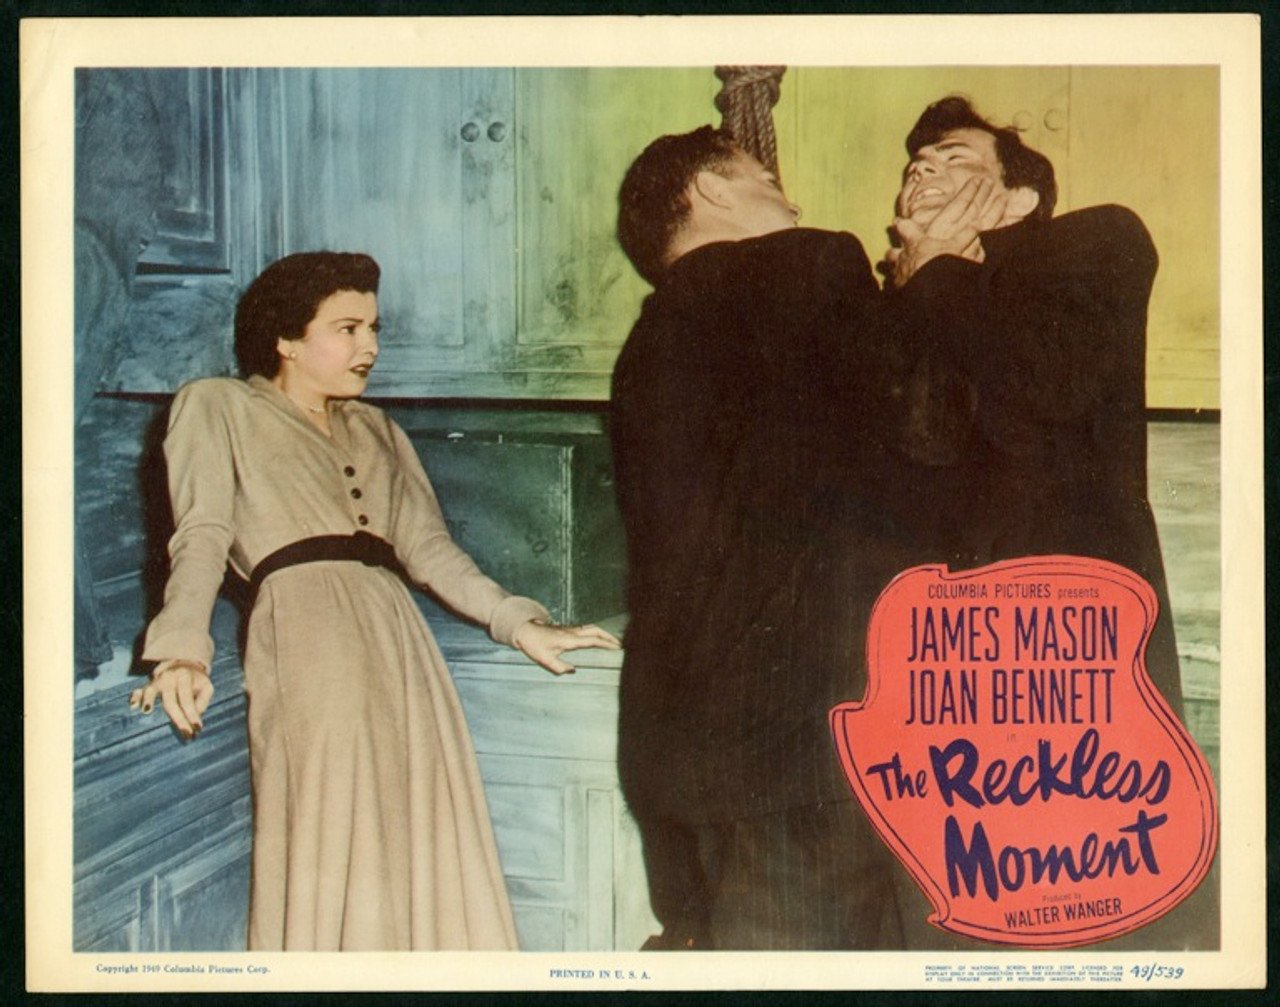 The reckless moment James Mason movie poster print